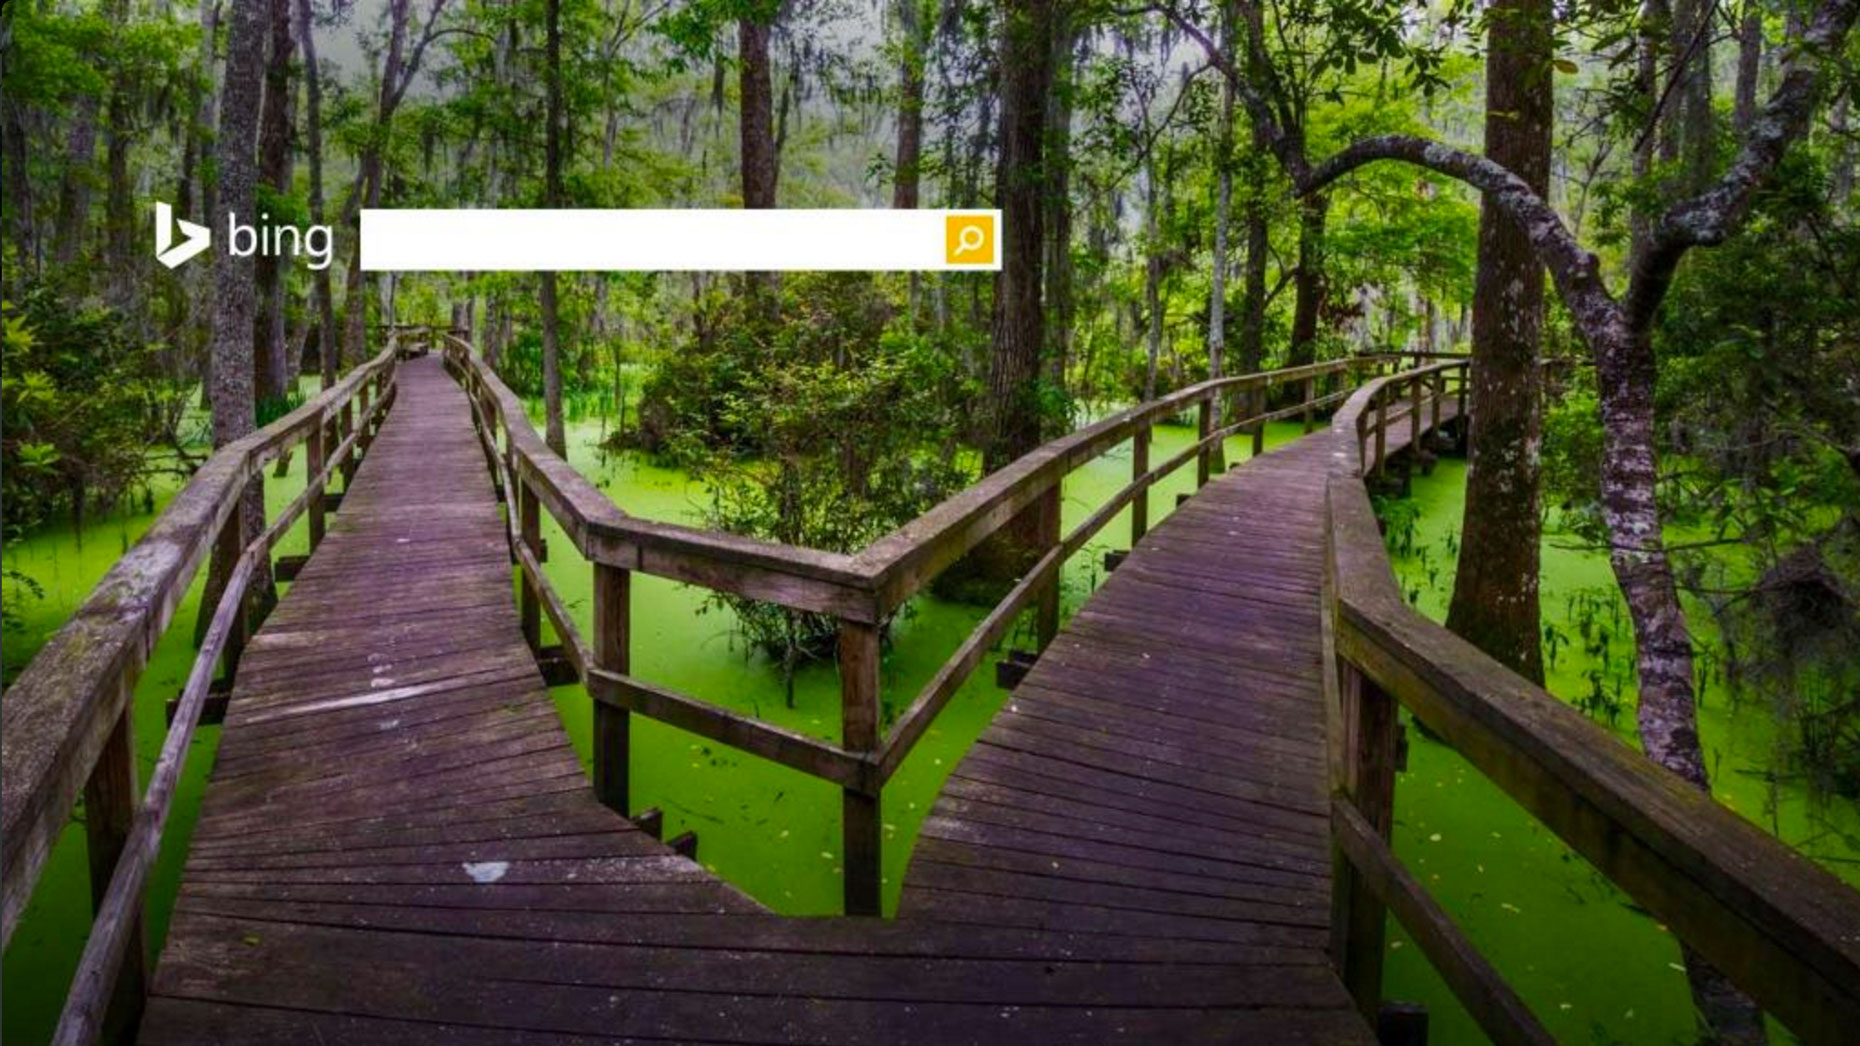 Microsoft - Bing Homepage - Hilton Head Island, South Carolina